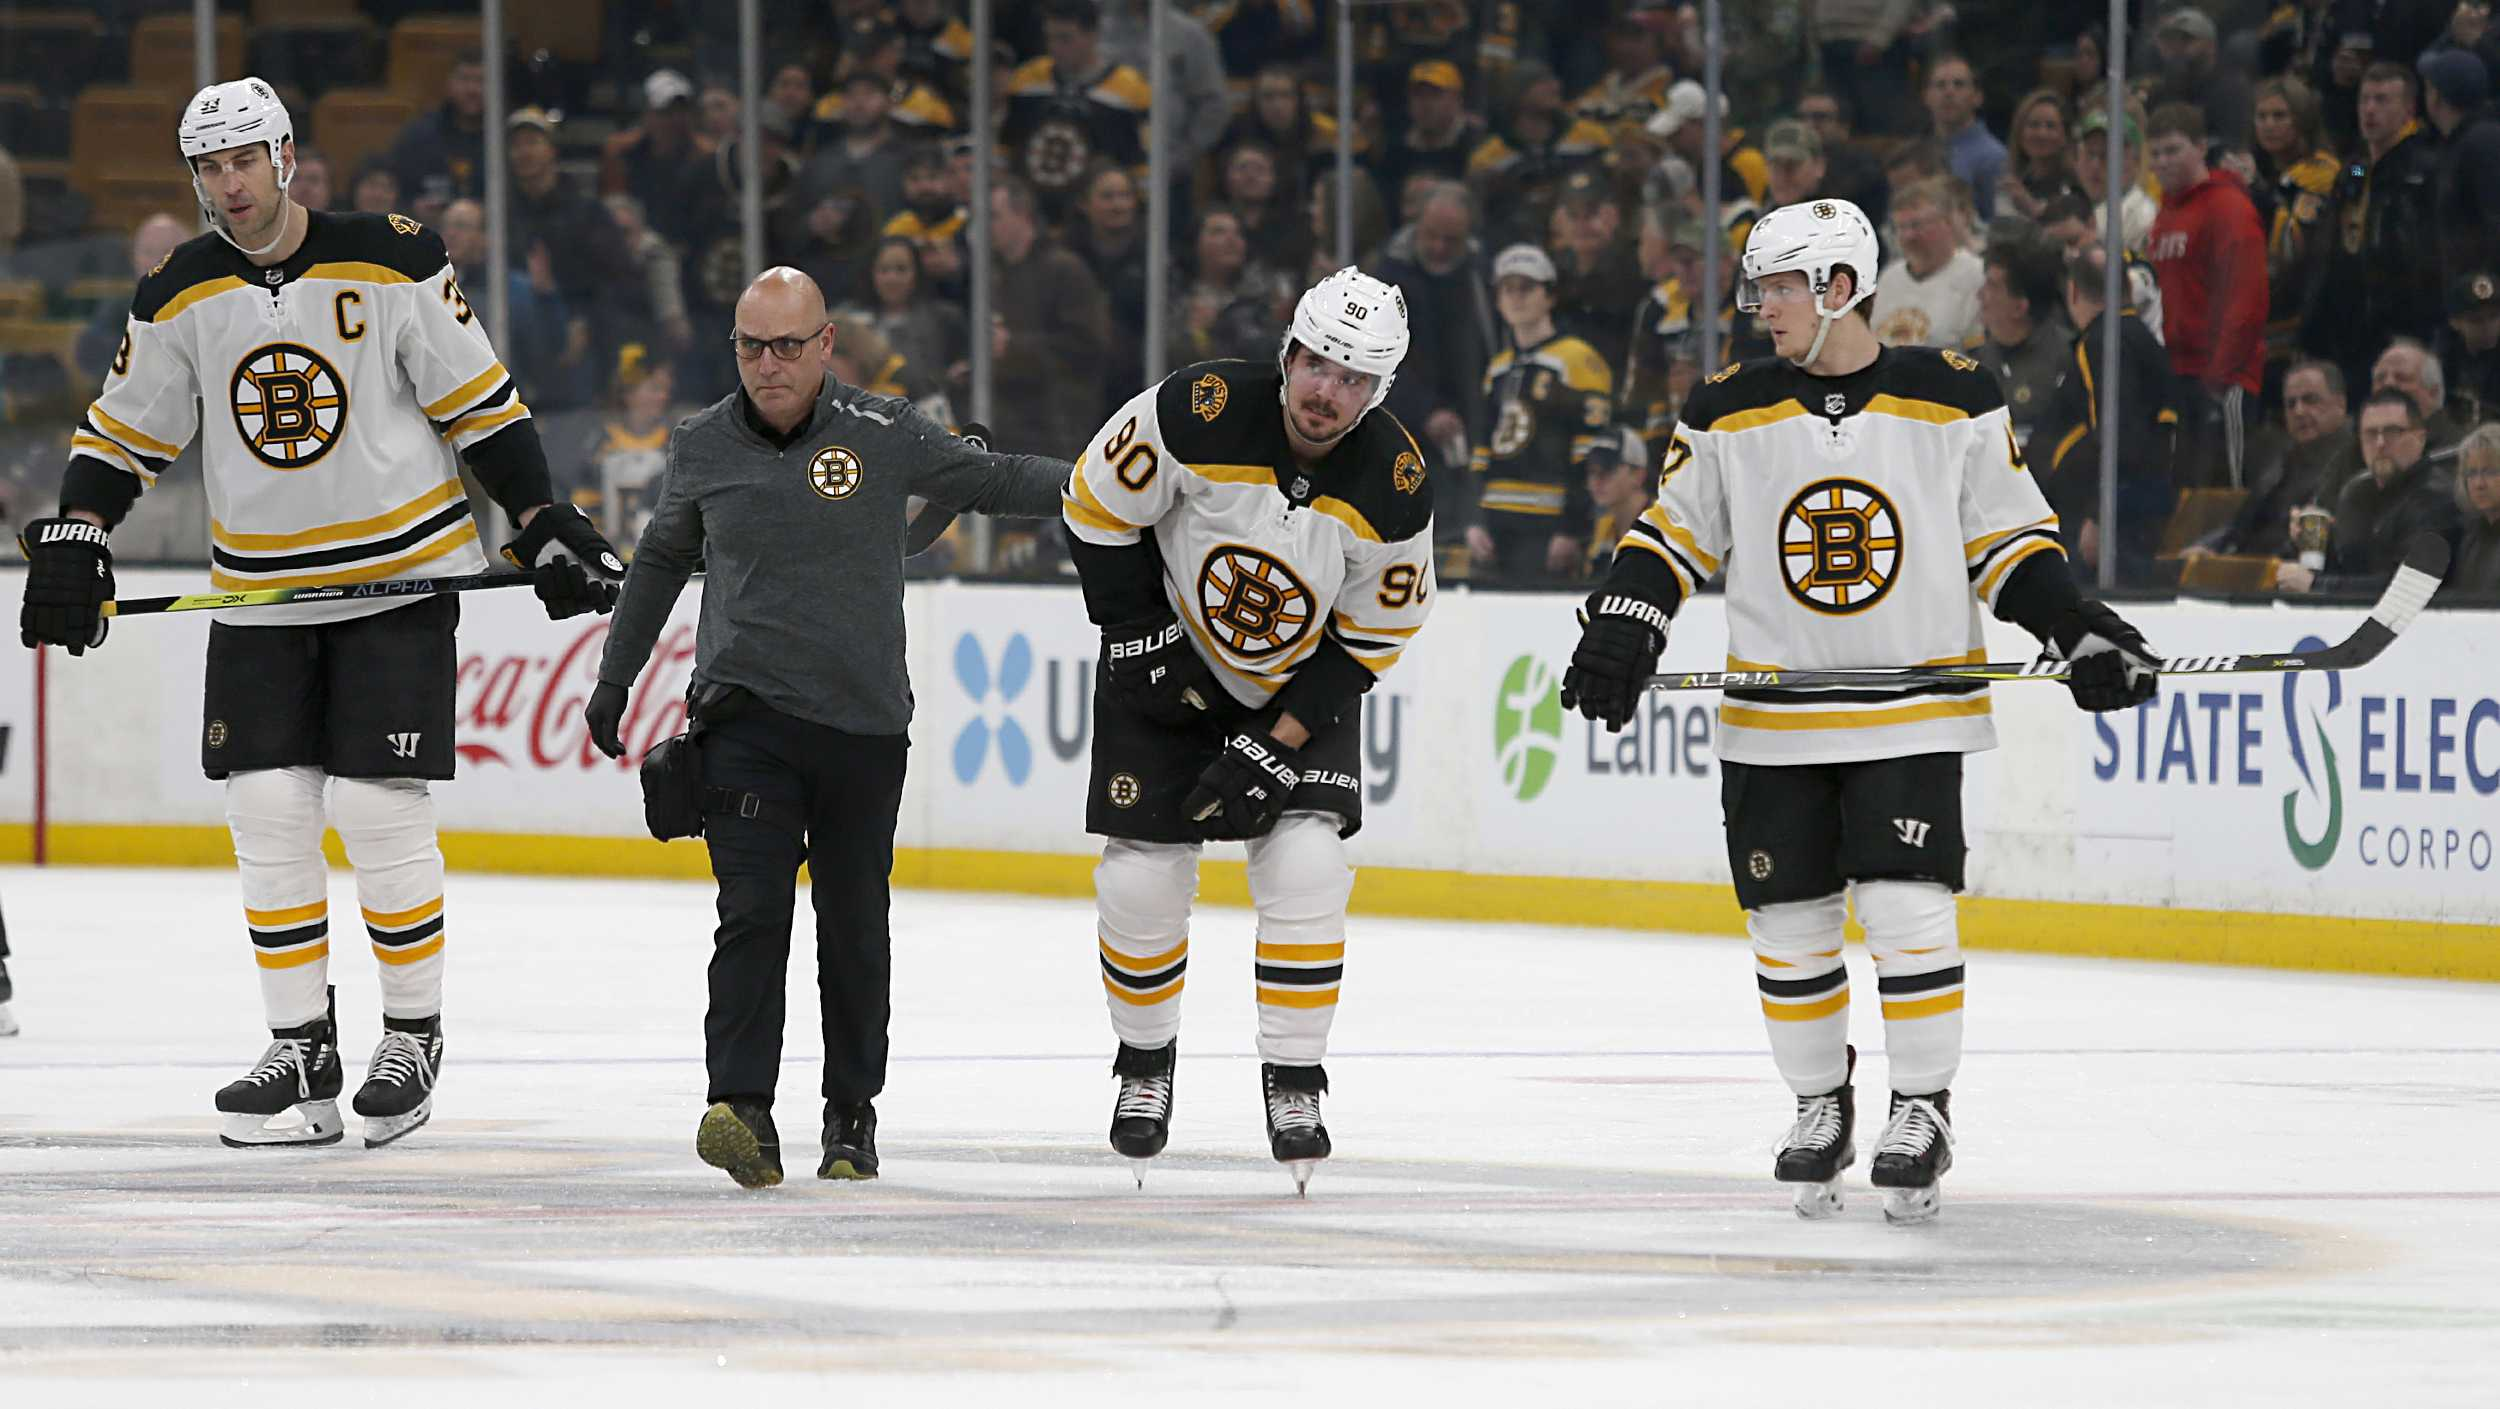 A trainer helps Boston Bruins left wing Marcus Johansson (90) off the ice after he was injured as Zdeno Chara, left, and Torey Krug, right, look on during the first period of an NHL hockey game against the Carolina Hurricanes, Tuesday, March 5, 2019, in Boston. (AP Photo/Mary Schwalm)